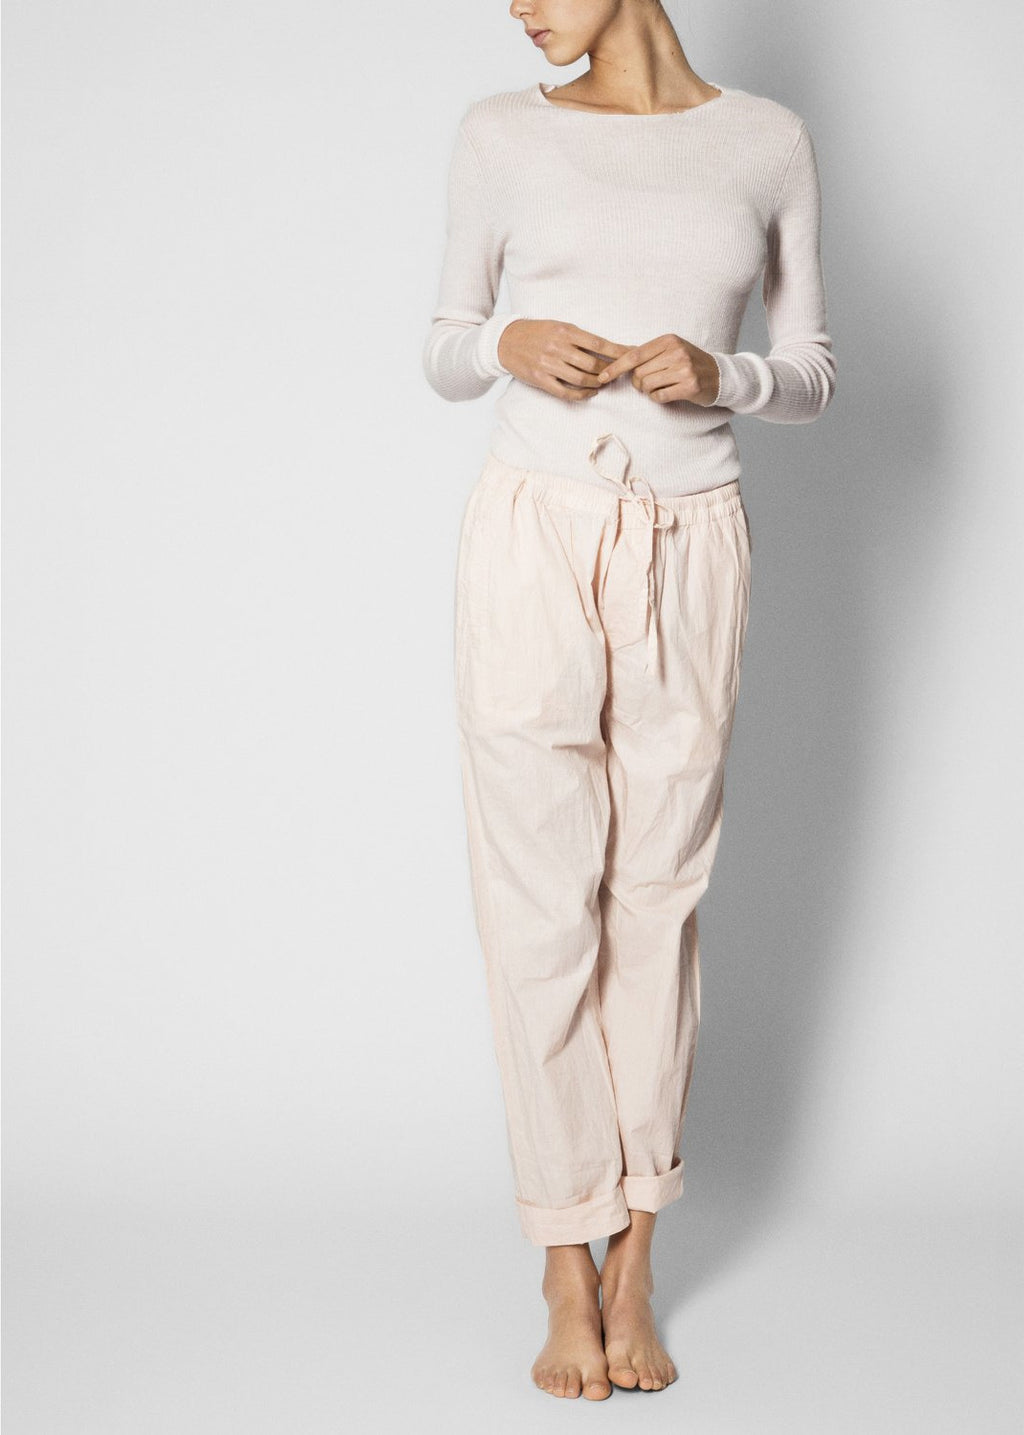 model wearing light pink organic cotton pants and a white top